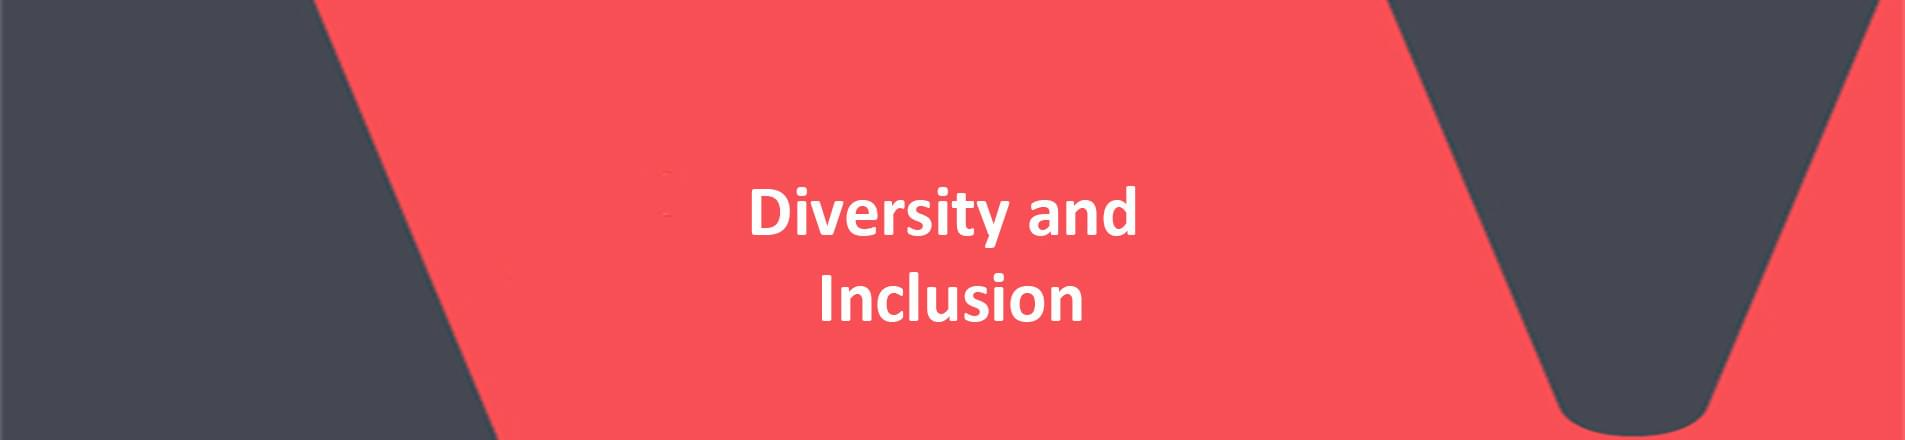 """VERCIDA banner image.  Red background with the words """"Diversity and Inclusion"""" in white text."""